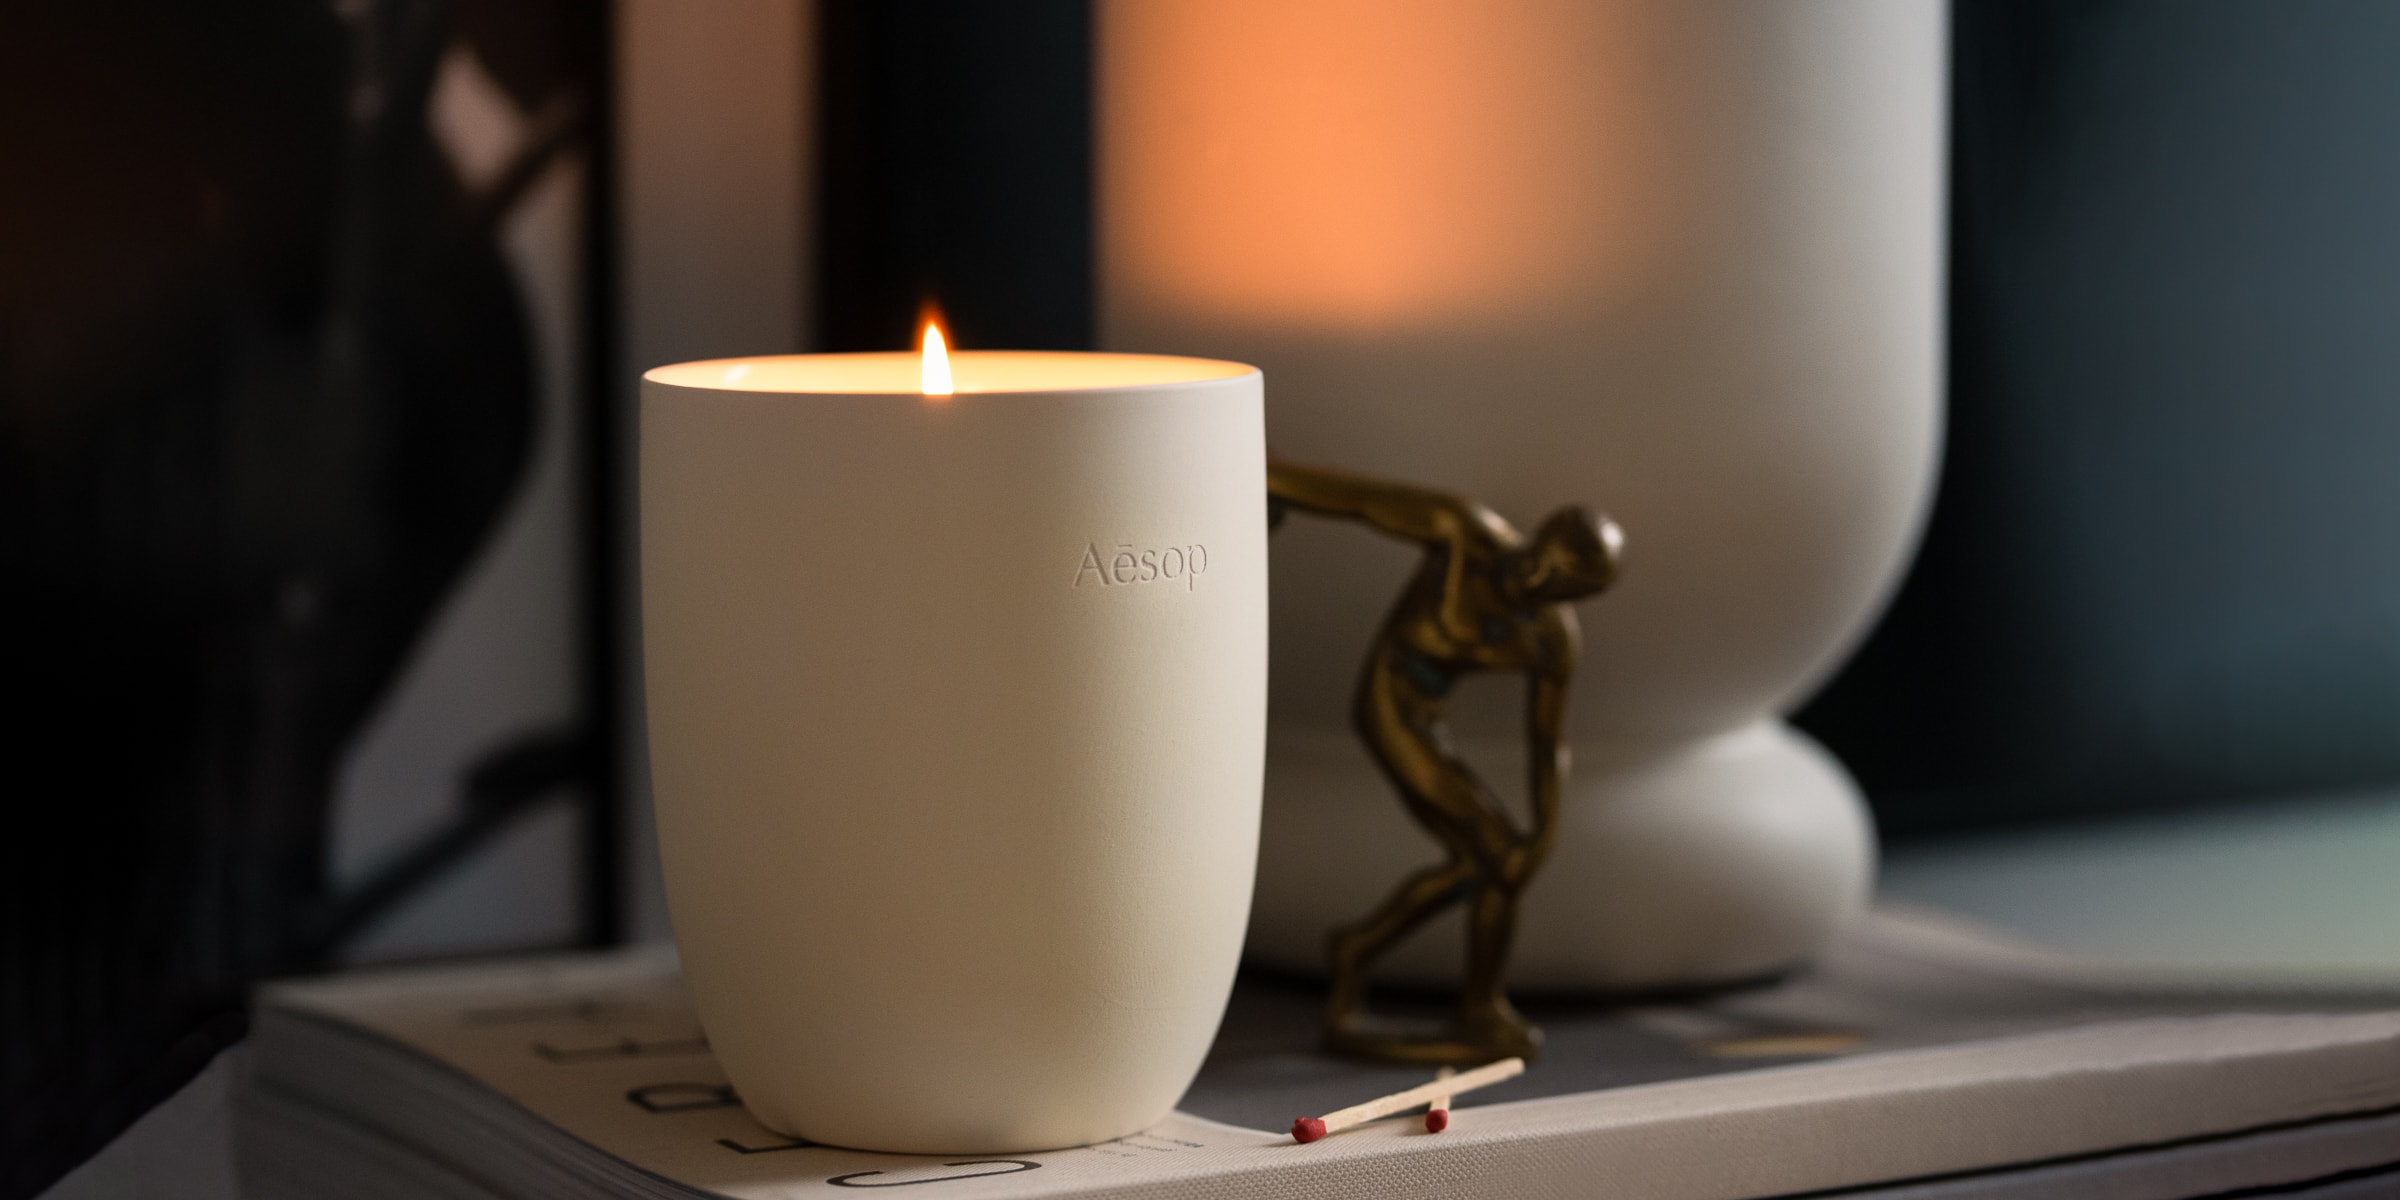 best scented candles home fragrance - Luxe Digital